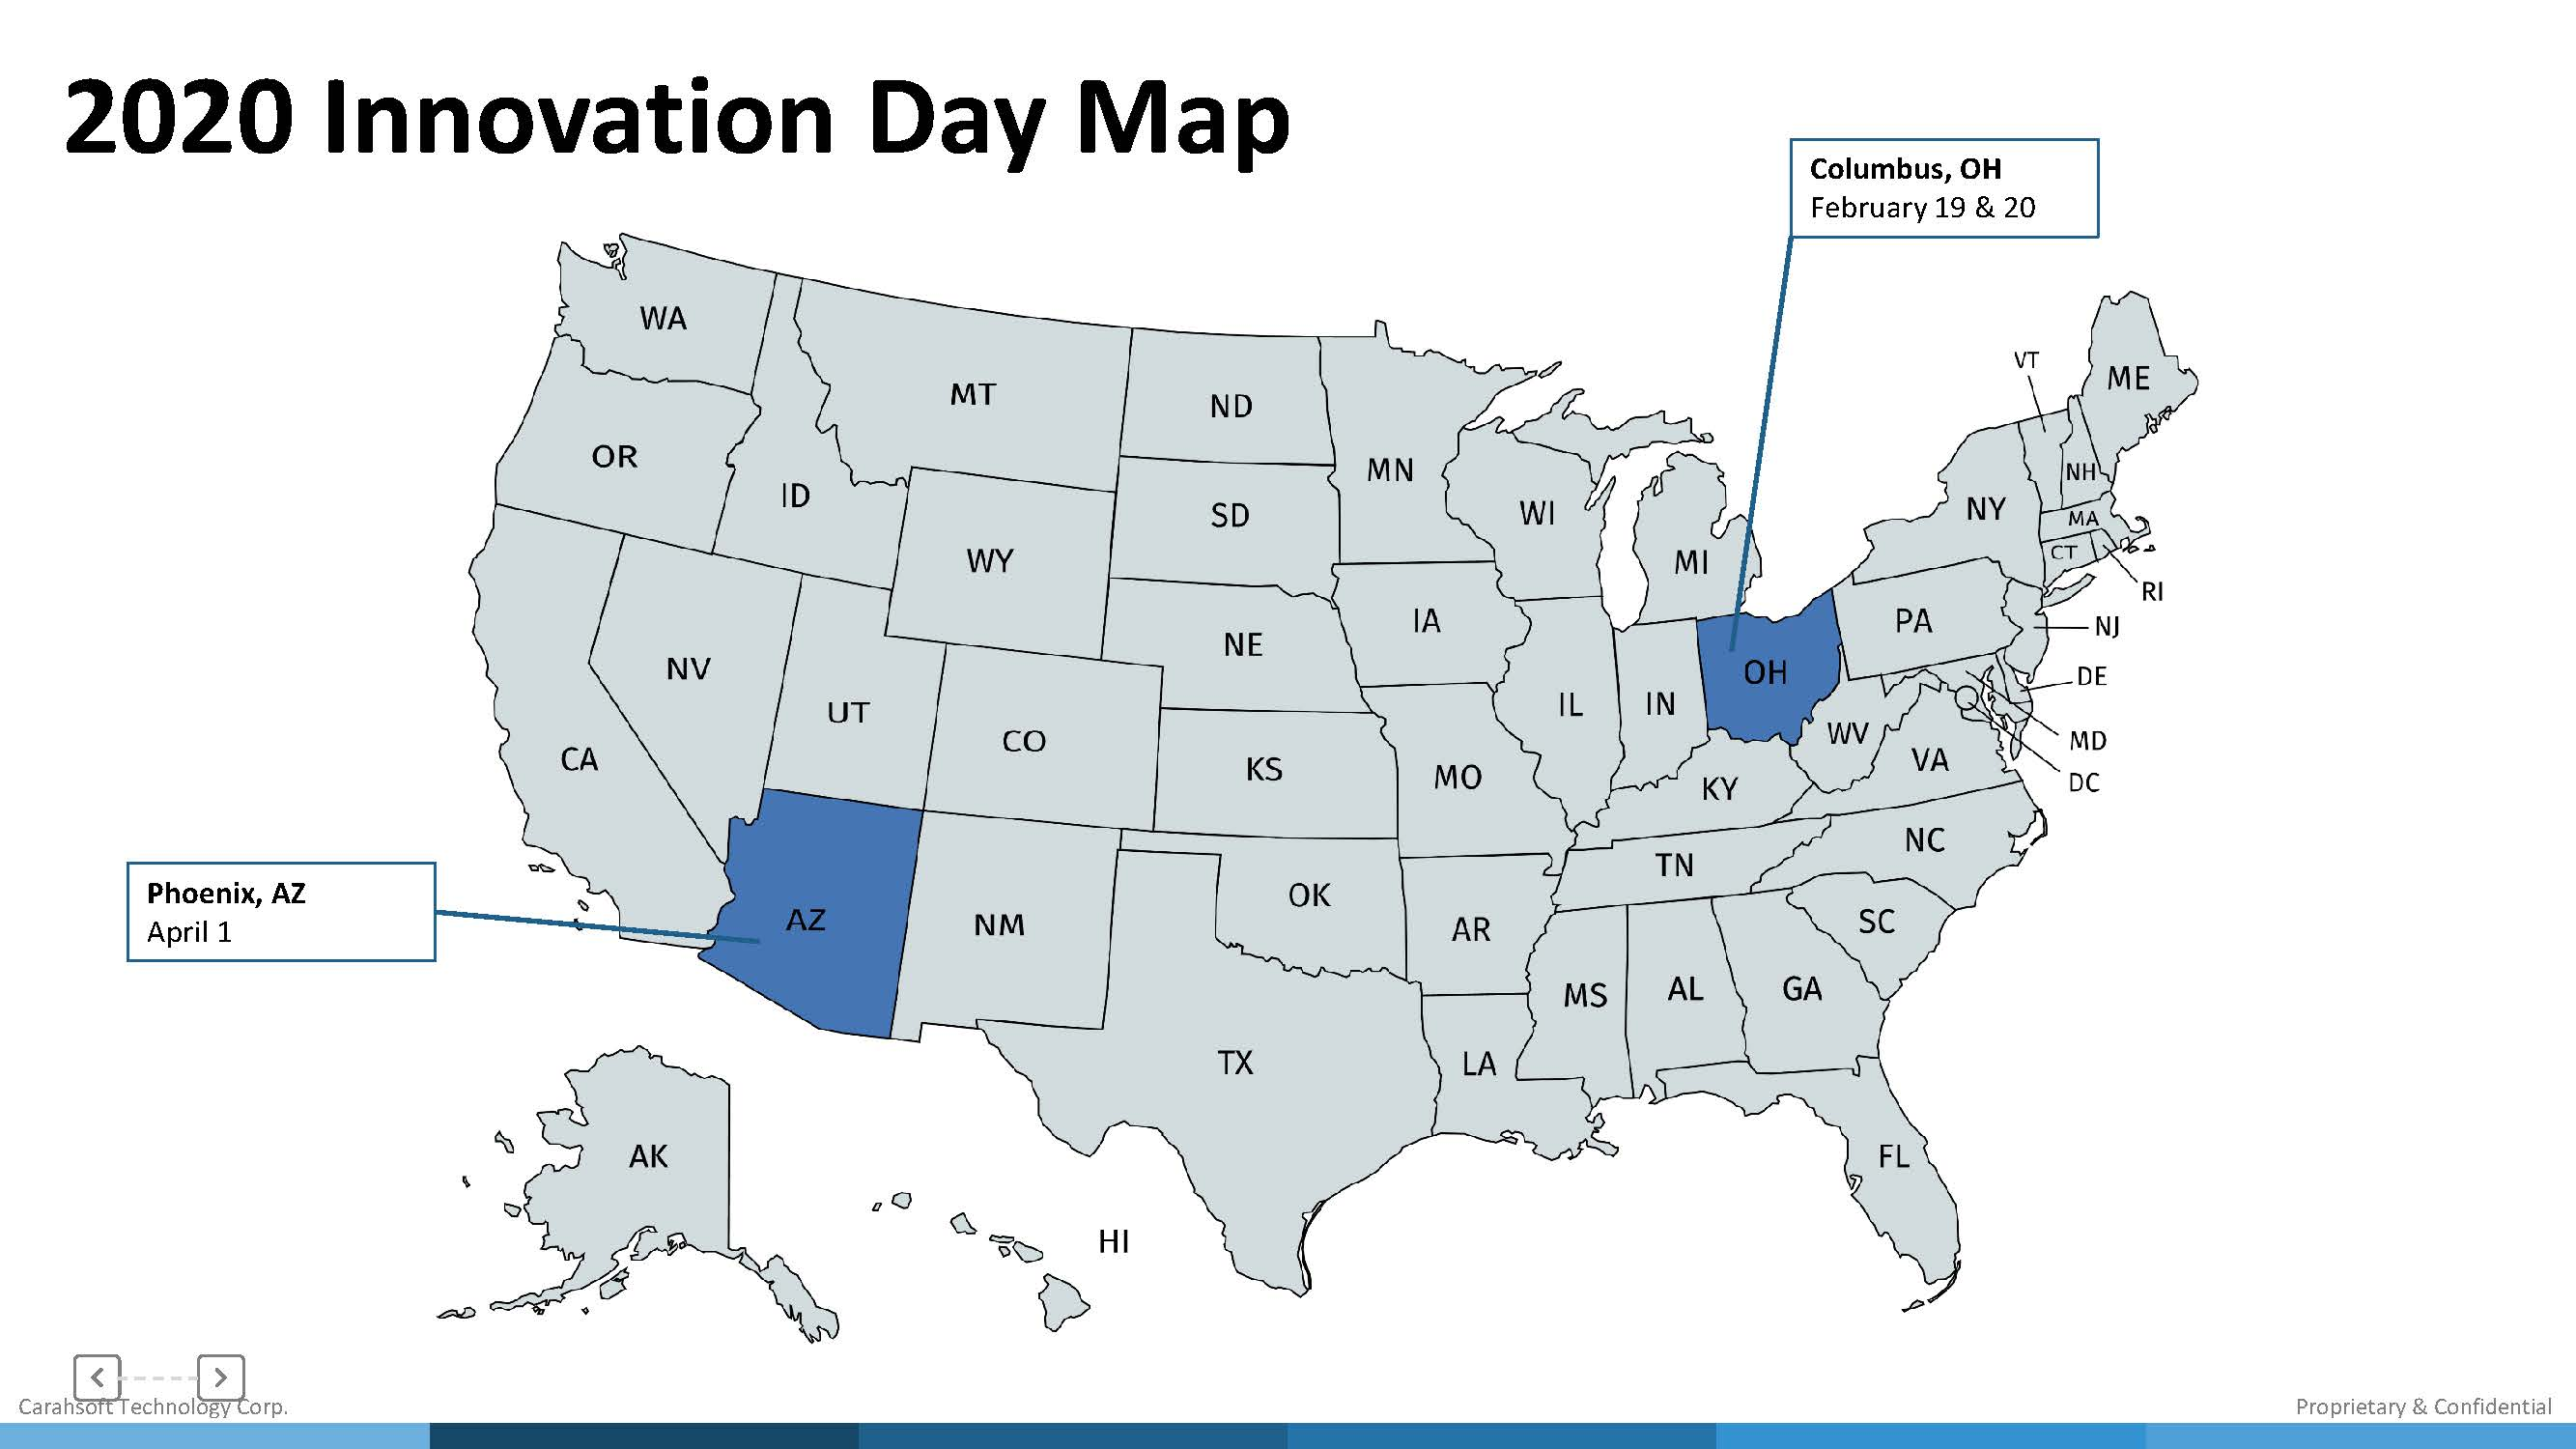 2020 Innovation Day Map